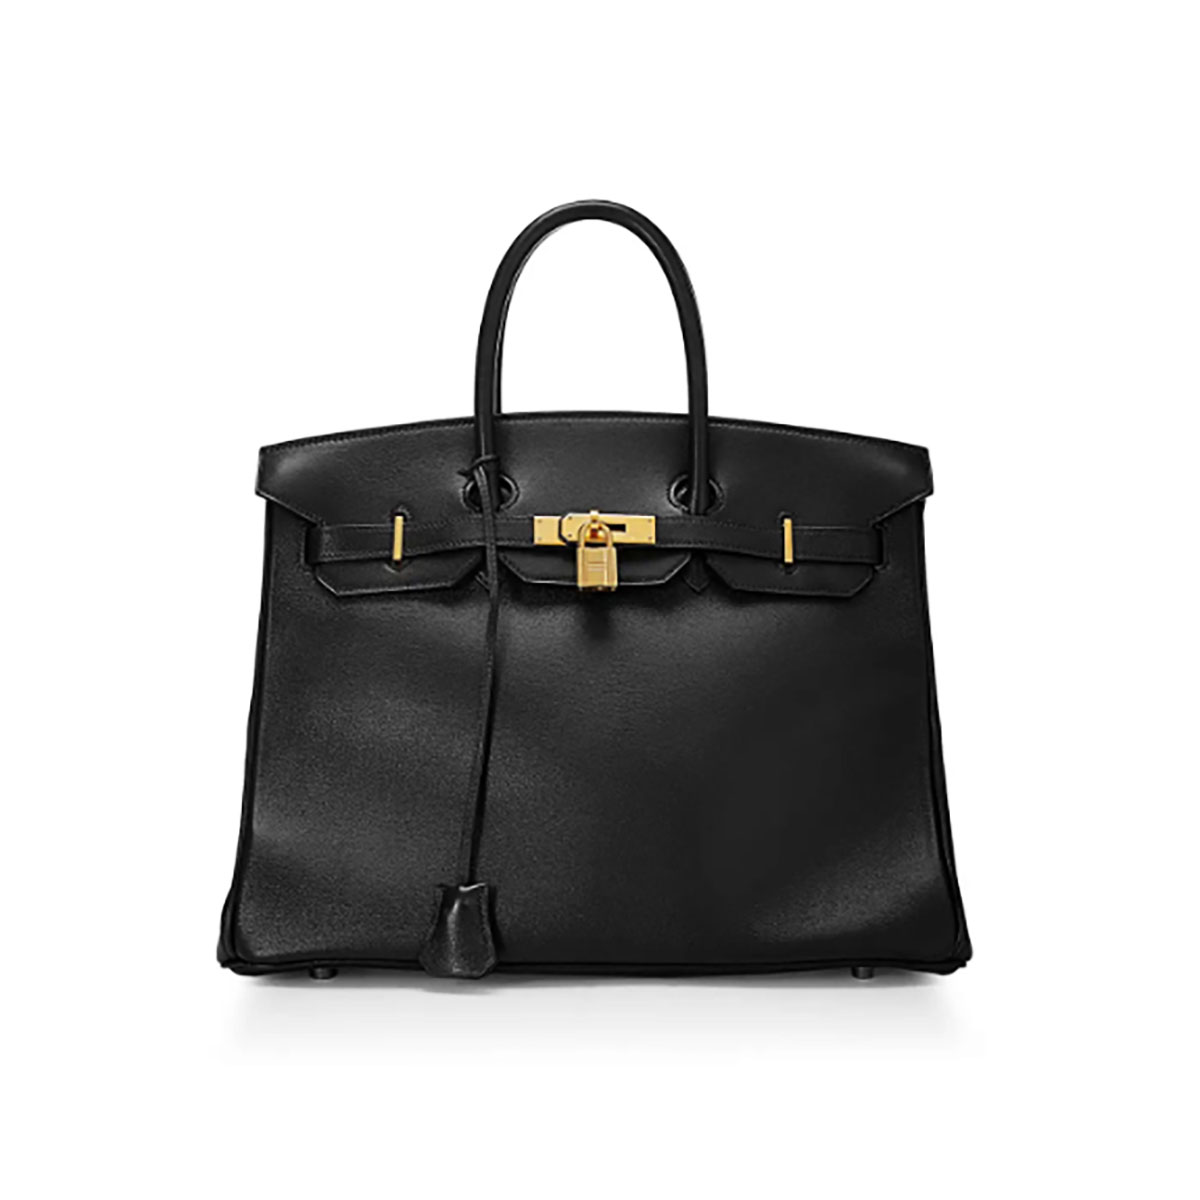 874114a9fbbb Hermès Birkin Bag Investment – What Is the Resale Value